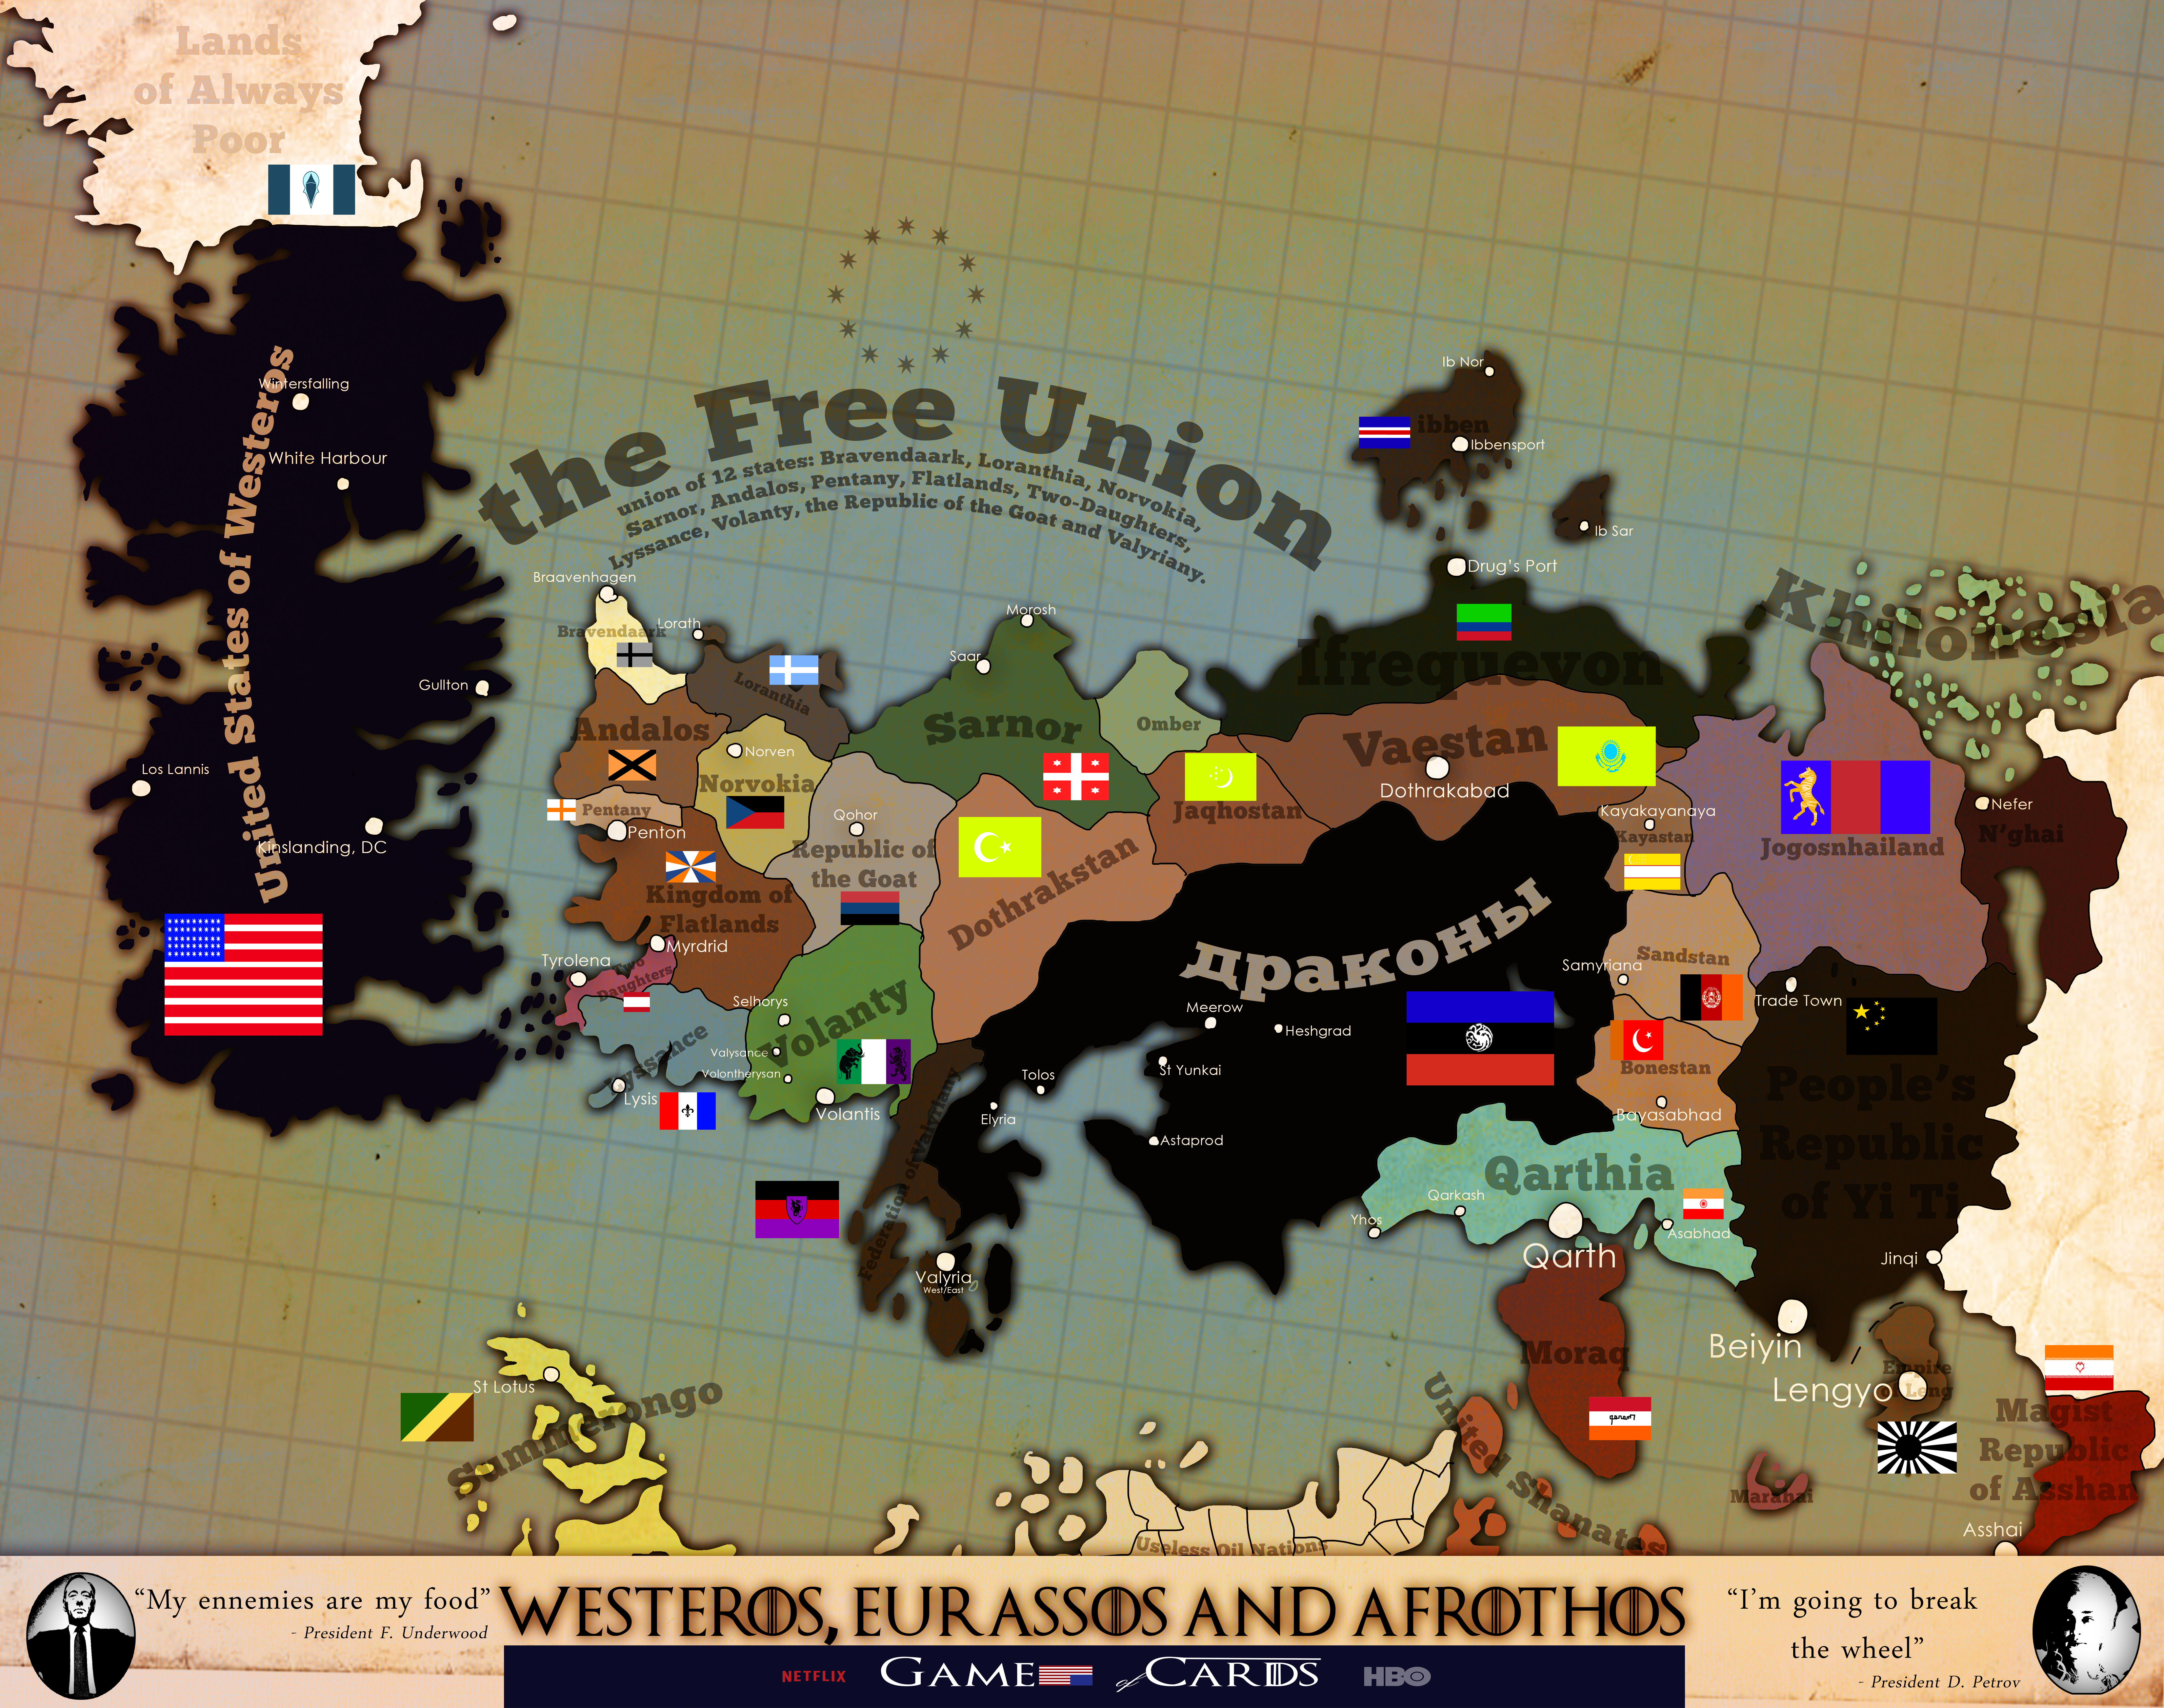 World map -Game of Thrones x House of Cards part 2 by ... on a song of ice and fire, fire and blood, gsme of thrones map, antarctic peninsula map, the winds of winter, a storm of swords, game of thrones - season 2, usa map, a dance with dragons, house targaryen, a feast for crows, see your house map, dothraki language, walking dead map, kolkata city map, guild wars 2 map, game of thrones - season 1, ice and fire world map, george r. r. martin, a golden crown, alfie owen-allen, throne of bones map, ww2 map, king of thrones map, upside down world map, a clash of kings houses map, winter is coming, lord snow, crown of thrones map, the prince of winterfell, calabria italy map, fire and ice book map, tales of dunk and egg, gameof thrones map, a clash of kings,